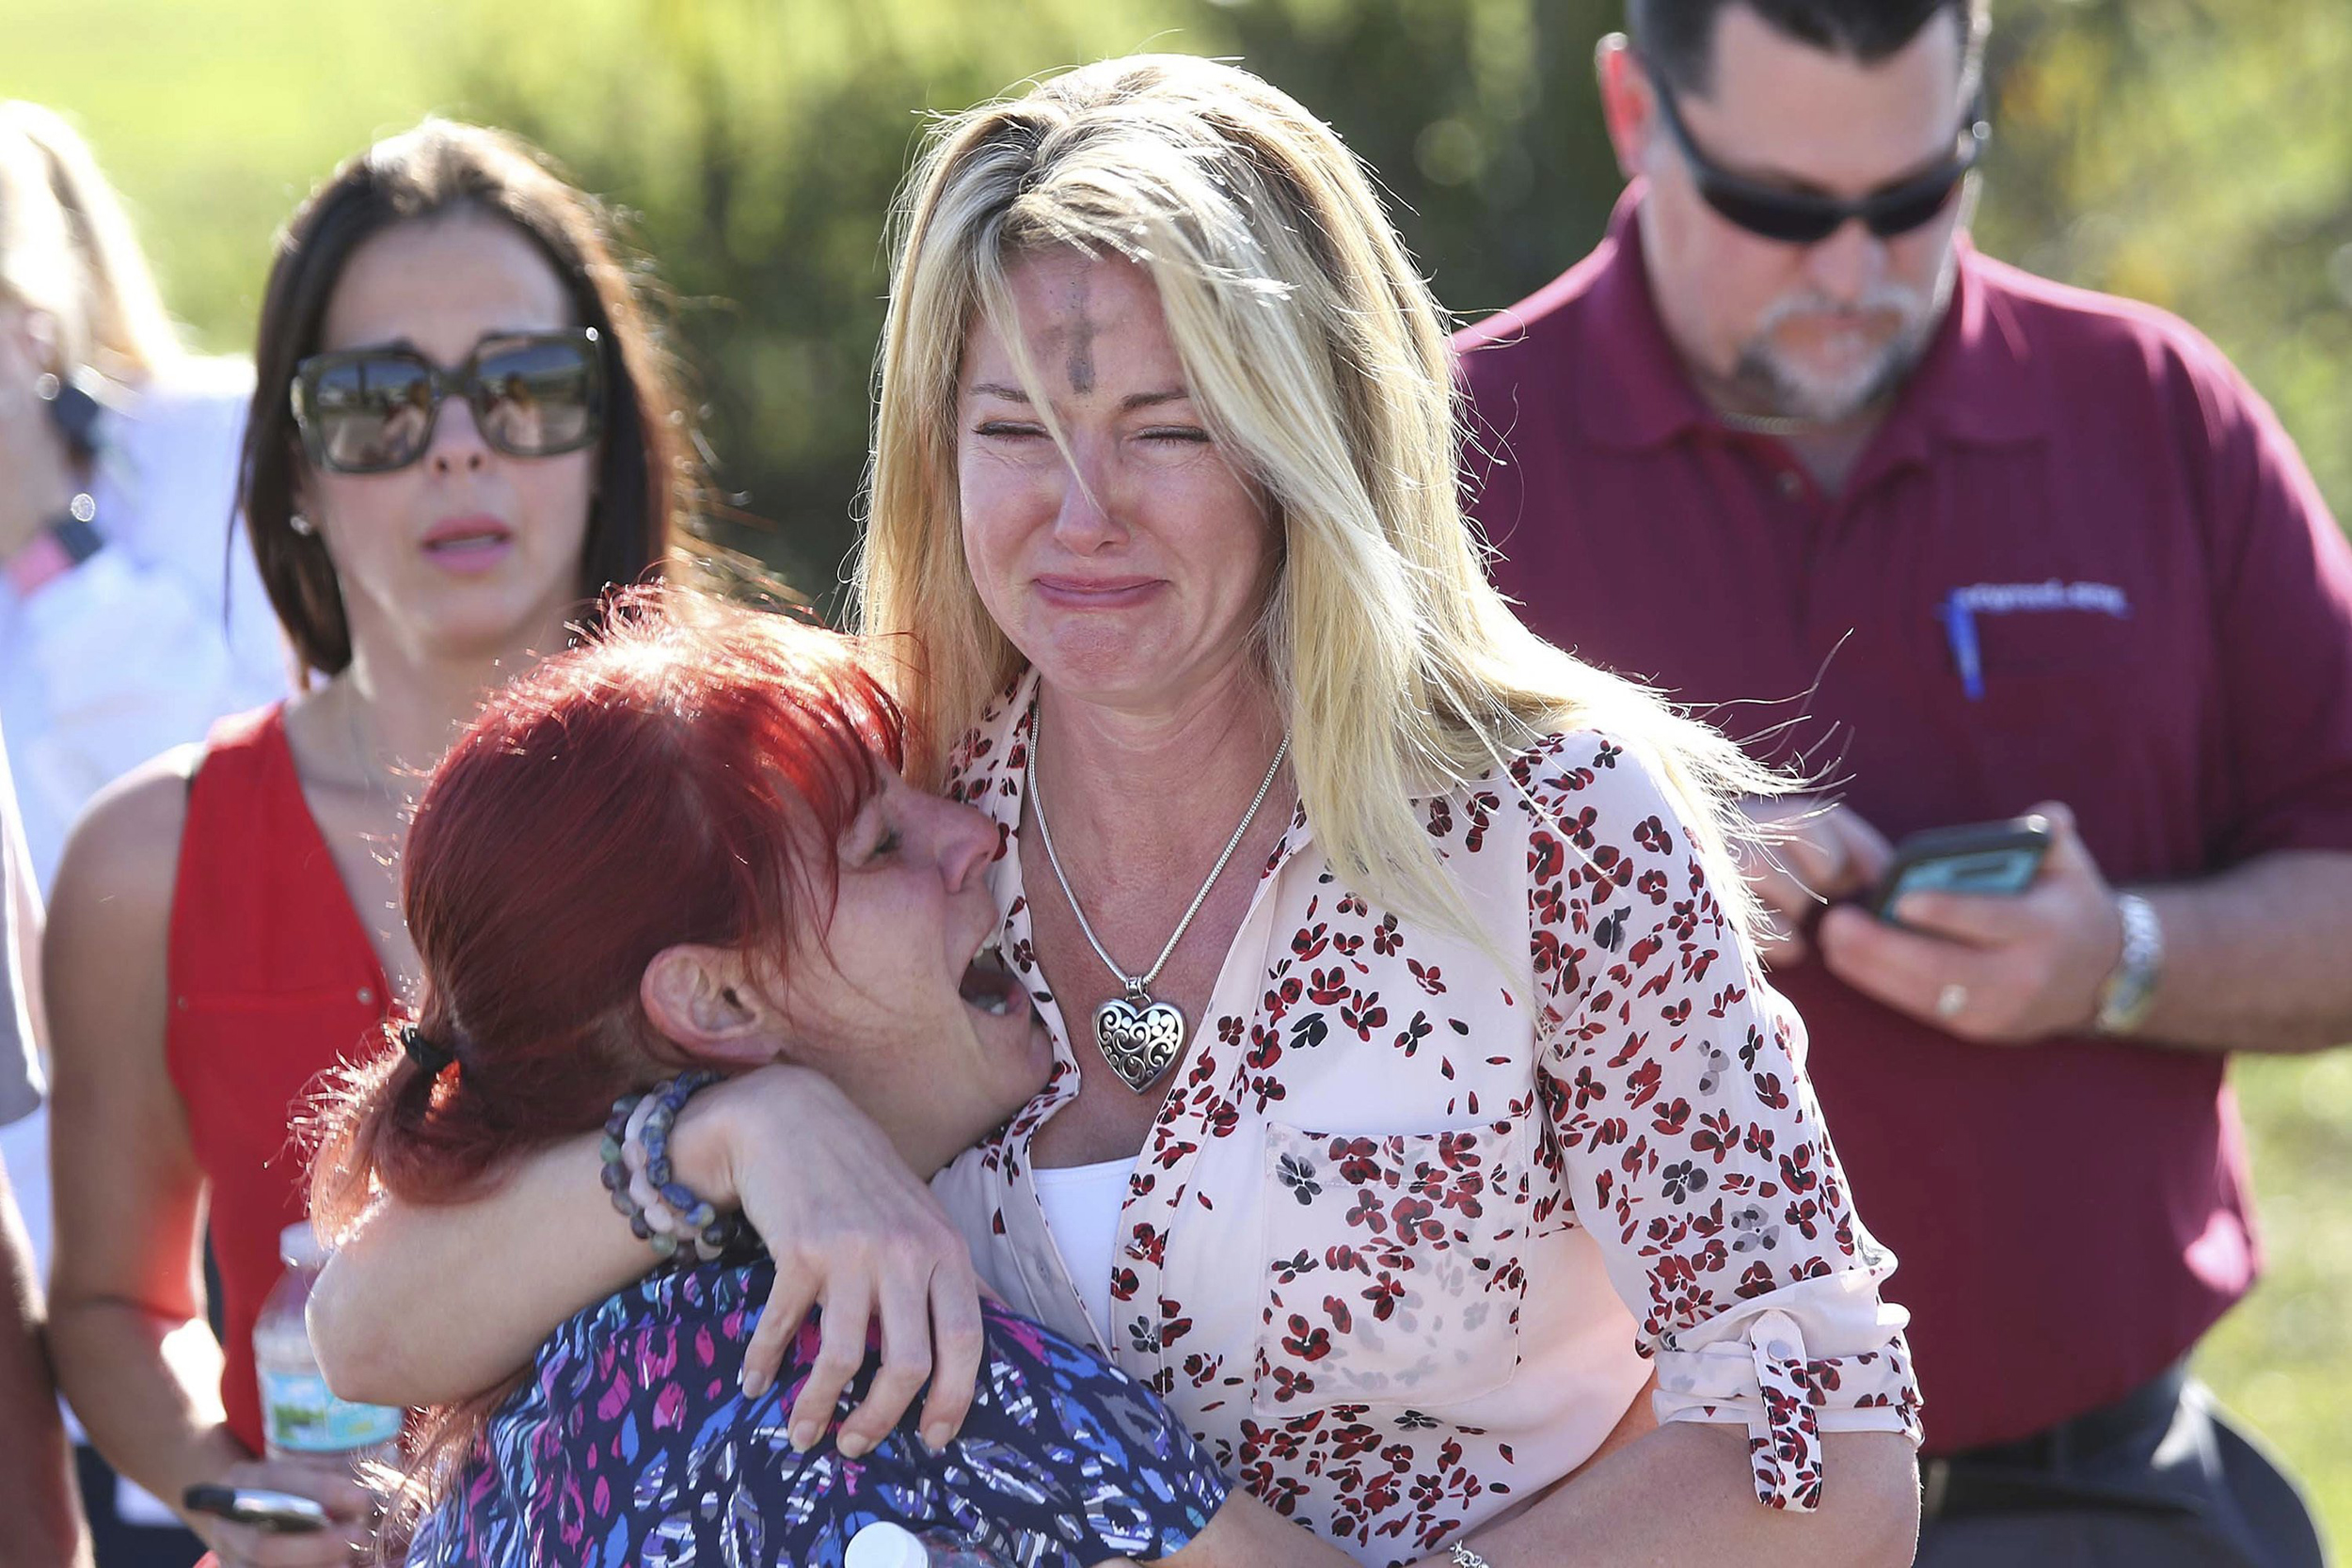 17 killed at Florida high school; governor blames 'pure evil'